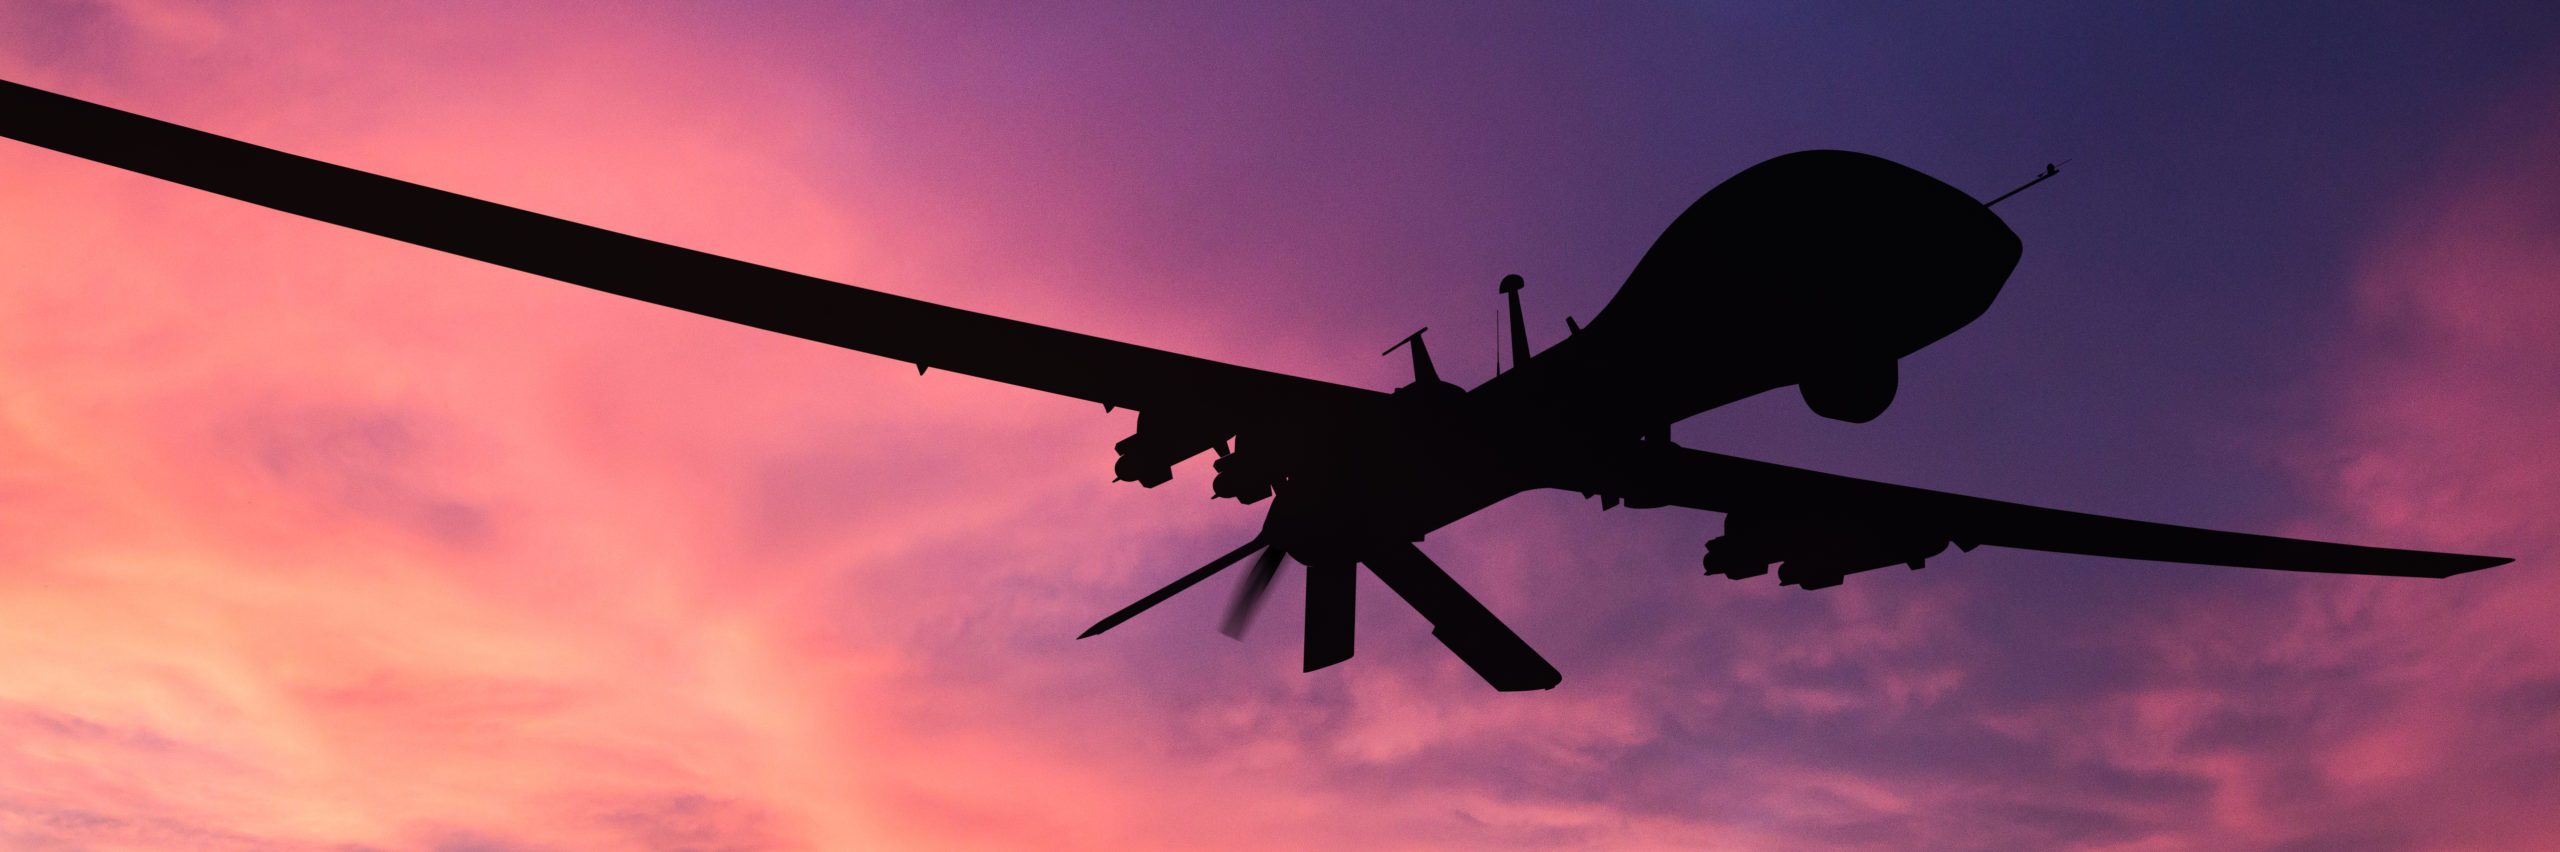 Military drone silhouette on sunset background. - Image [shutterstock]